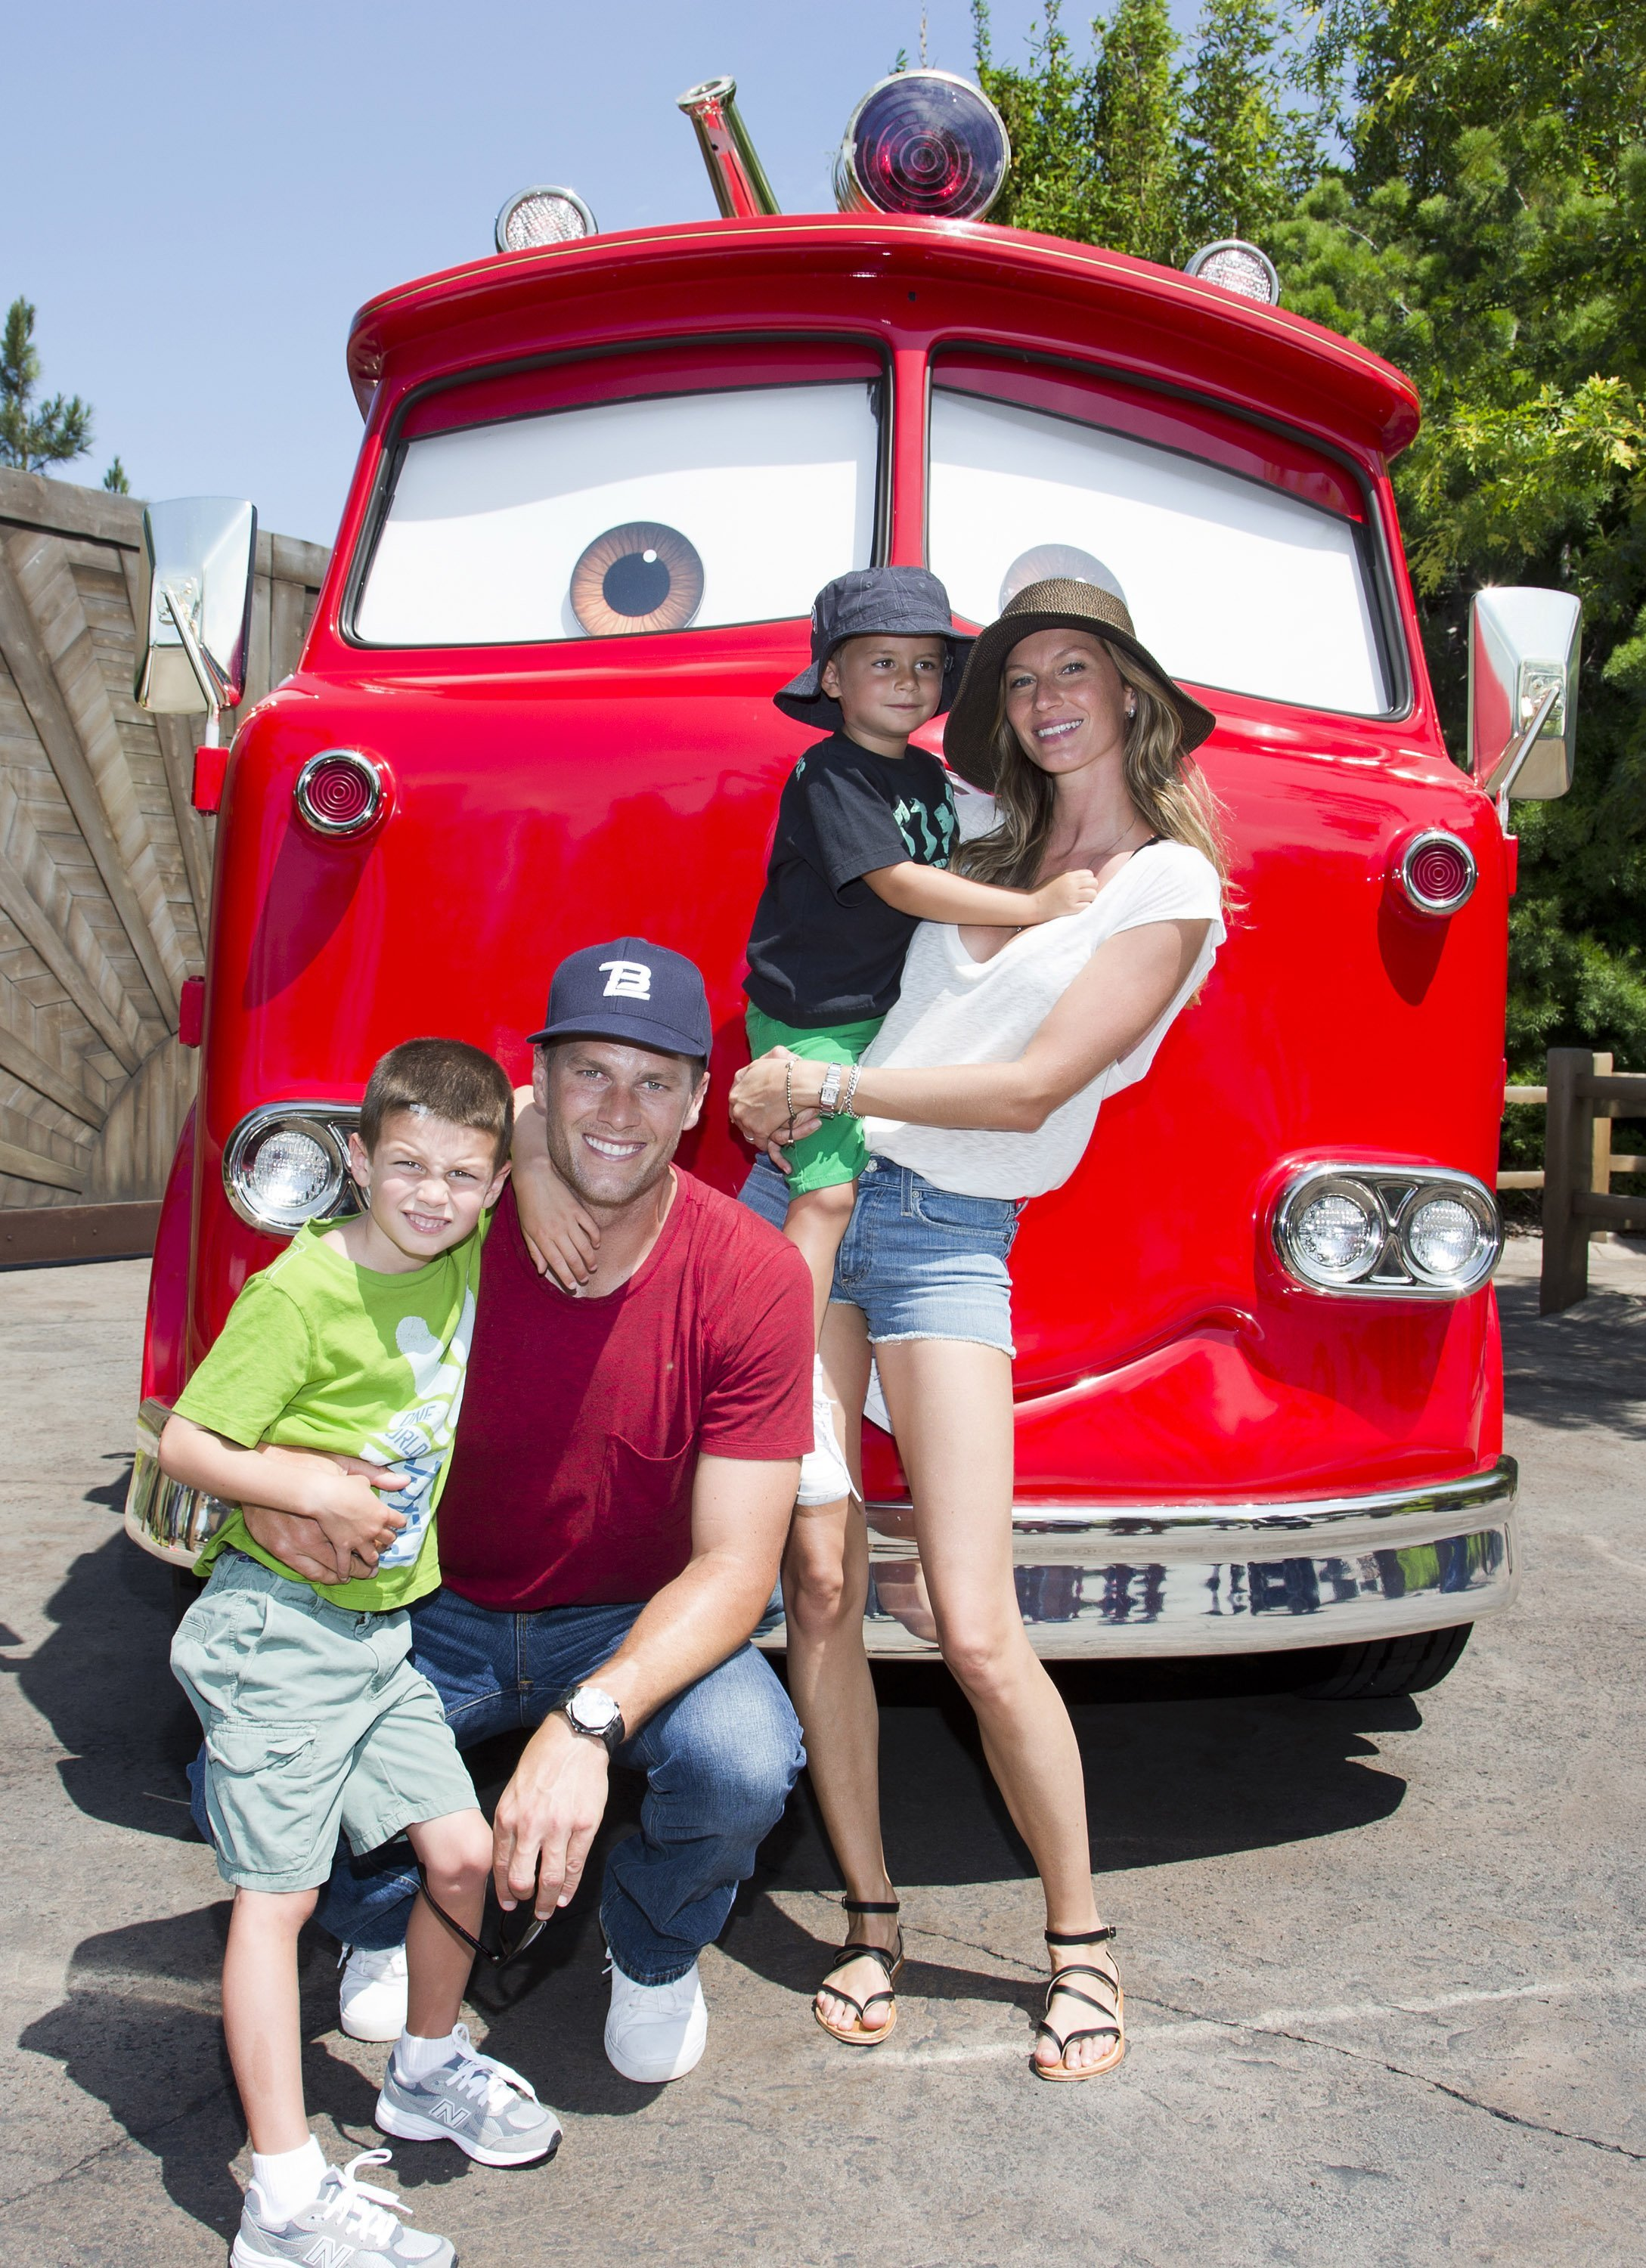 Tom Brady, his son Jack, 5, Gisele Bundchen, and their son Benjamin, 3, pose with Red the Fire Truck at Cars Land at Disney California Adventure park | Source: Getty Images